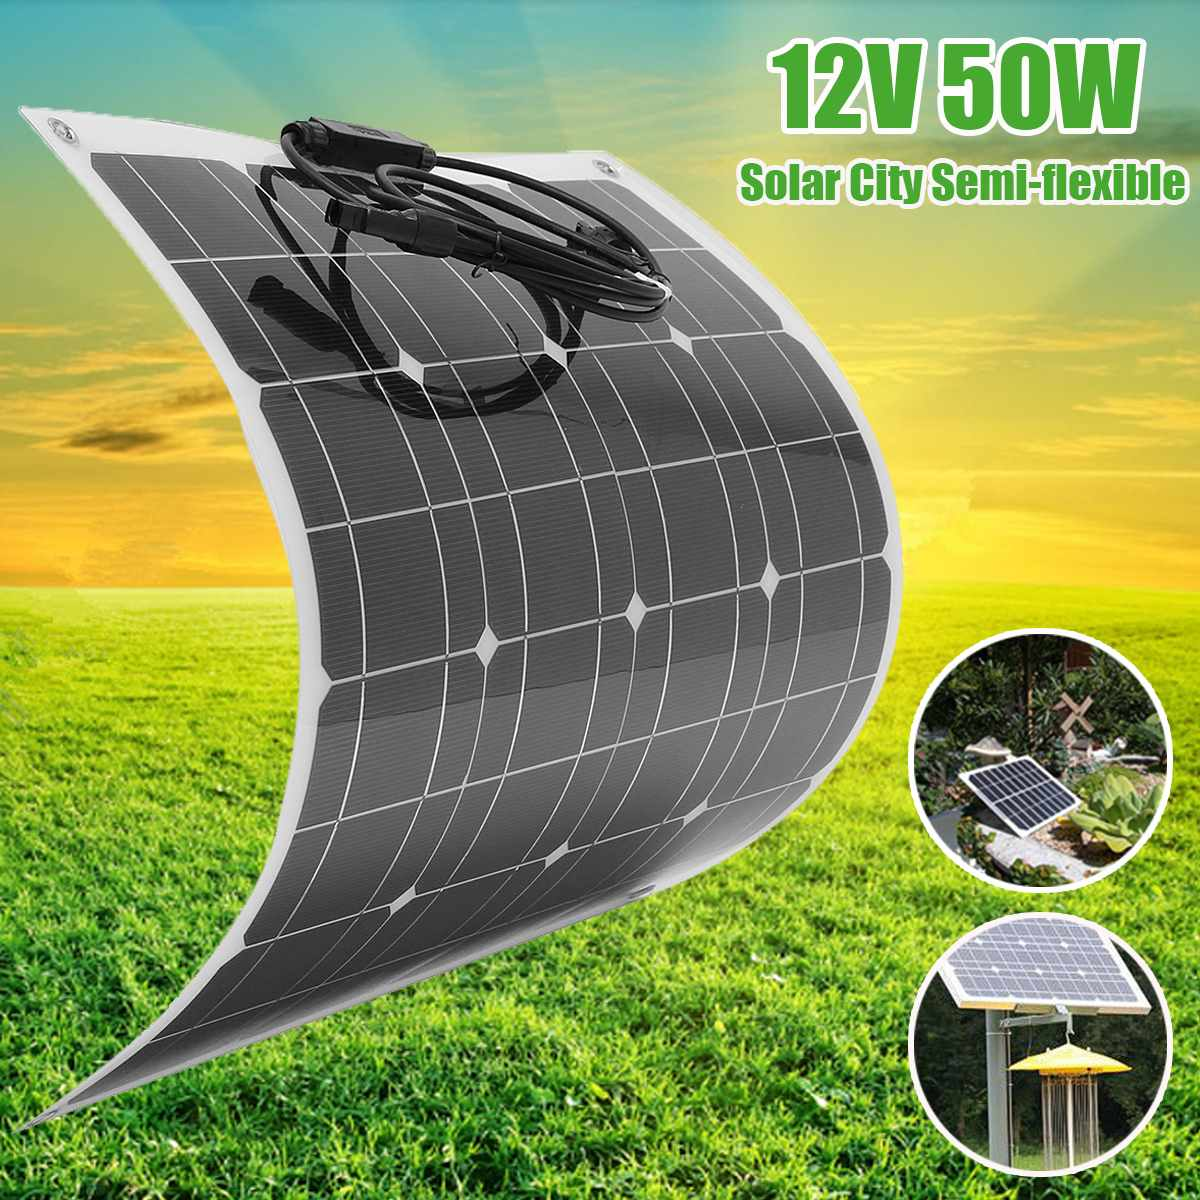 KINCO 60W/12V Semi-Flexible Solar Panel Monocrystalline Silicon Solar System Power Supply For Car Battery Charger 12v 50w monocrystalline silicon solar panel solar battery charger sunpower panel solar free shipping solar panels 12v